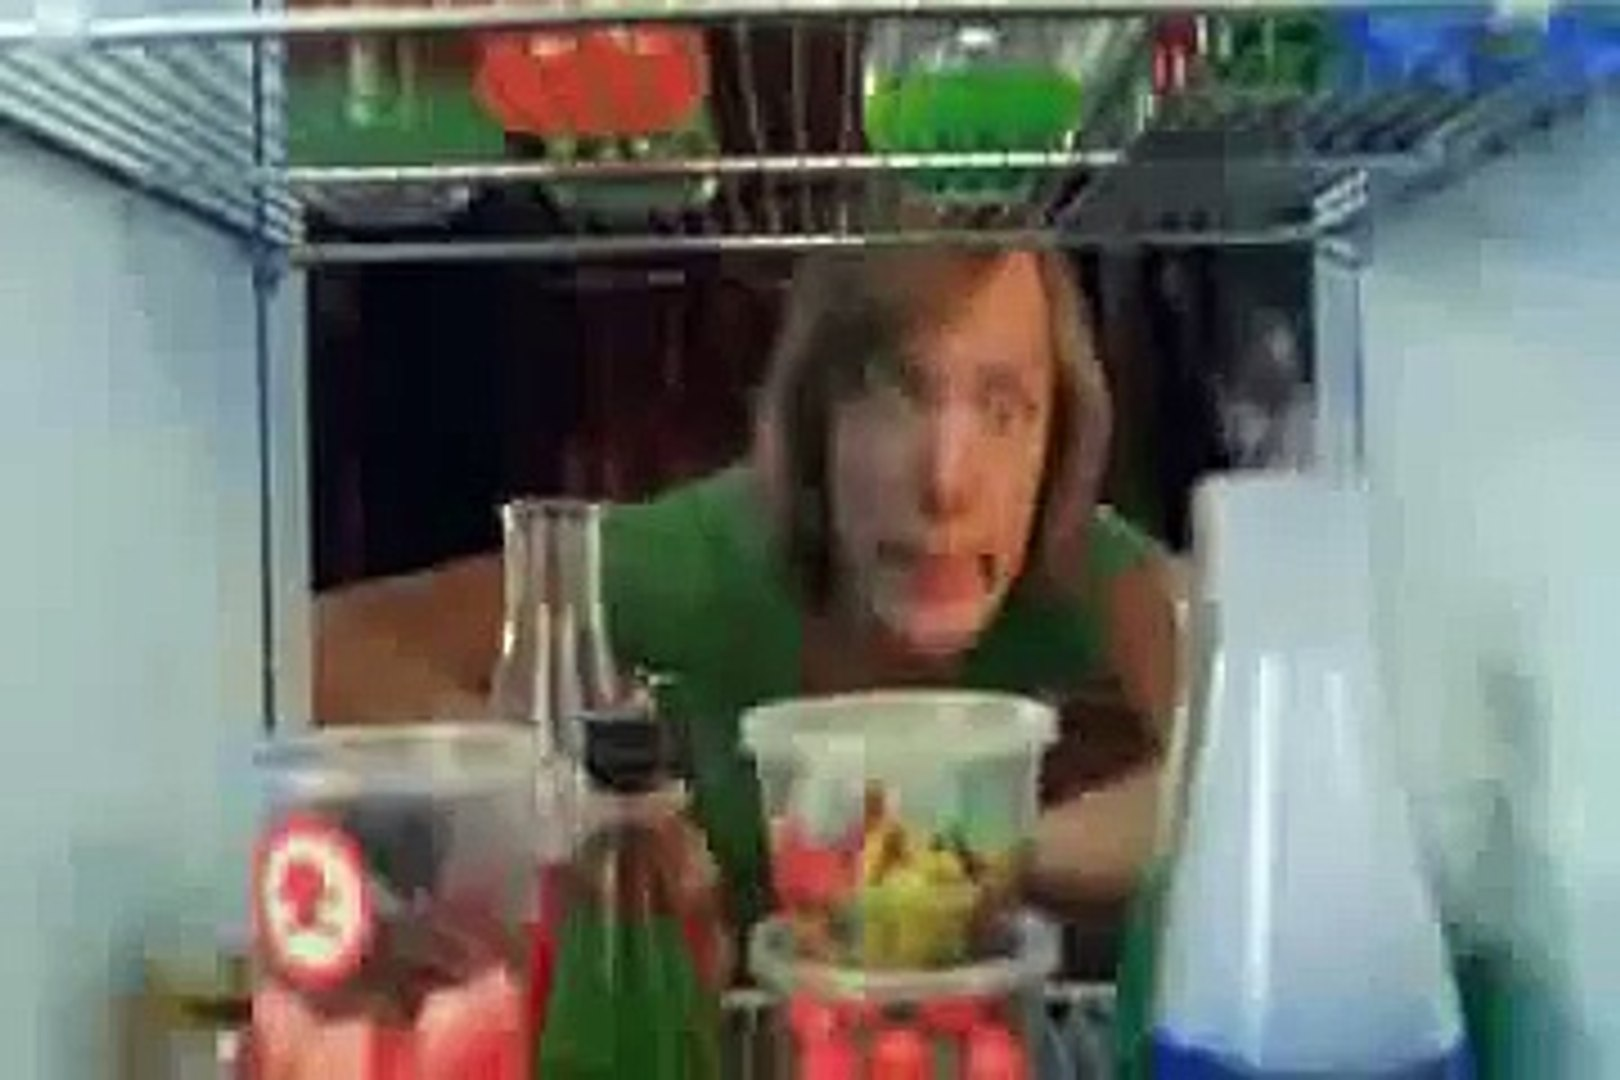 Scooby Doo 2 Monsters Unleashed Buff Shaggy Dailymotion Video